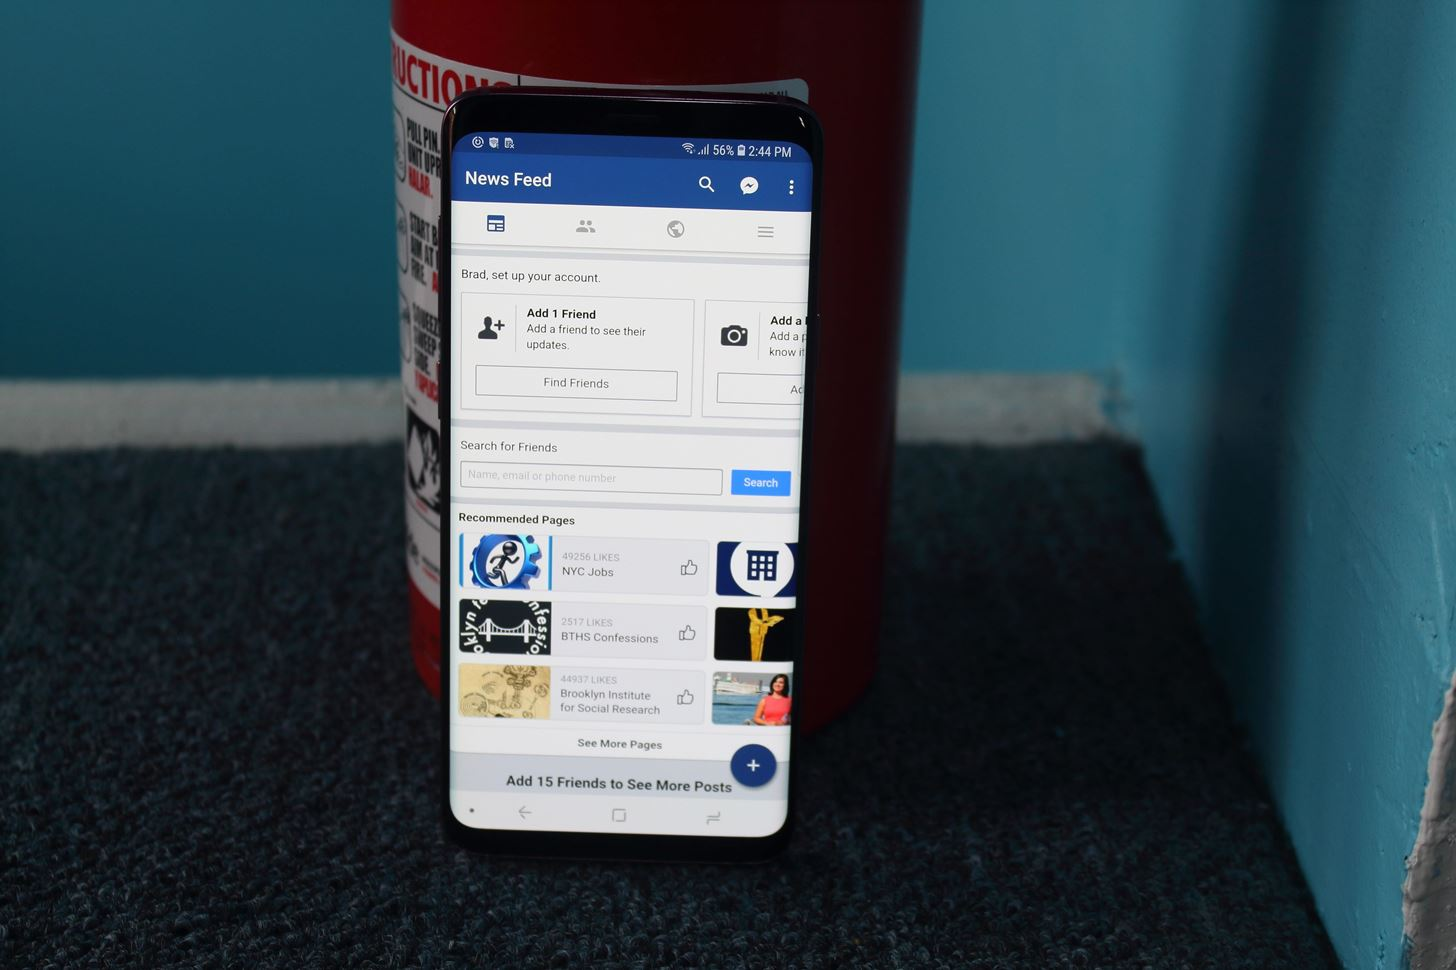 Samsung, not Apple, Make the best social media (and we can prove it)